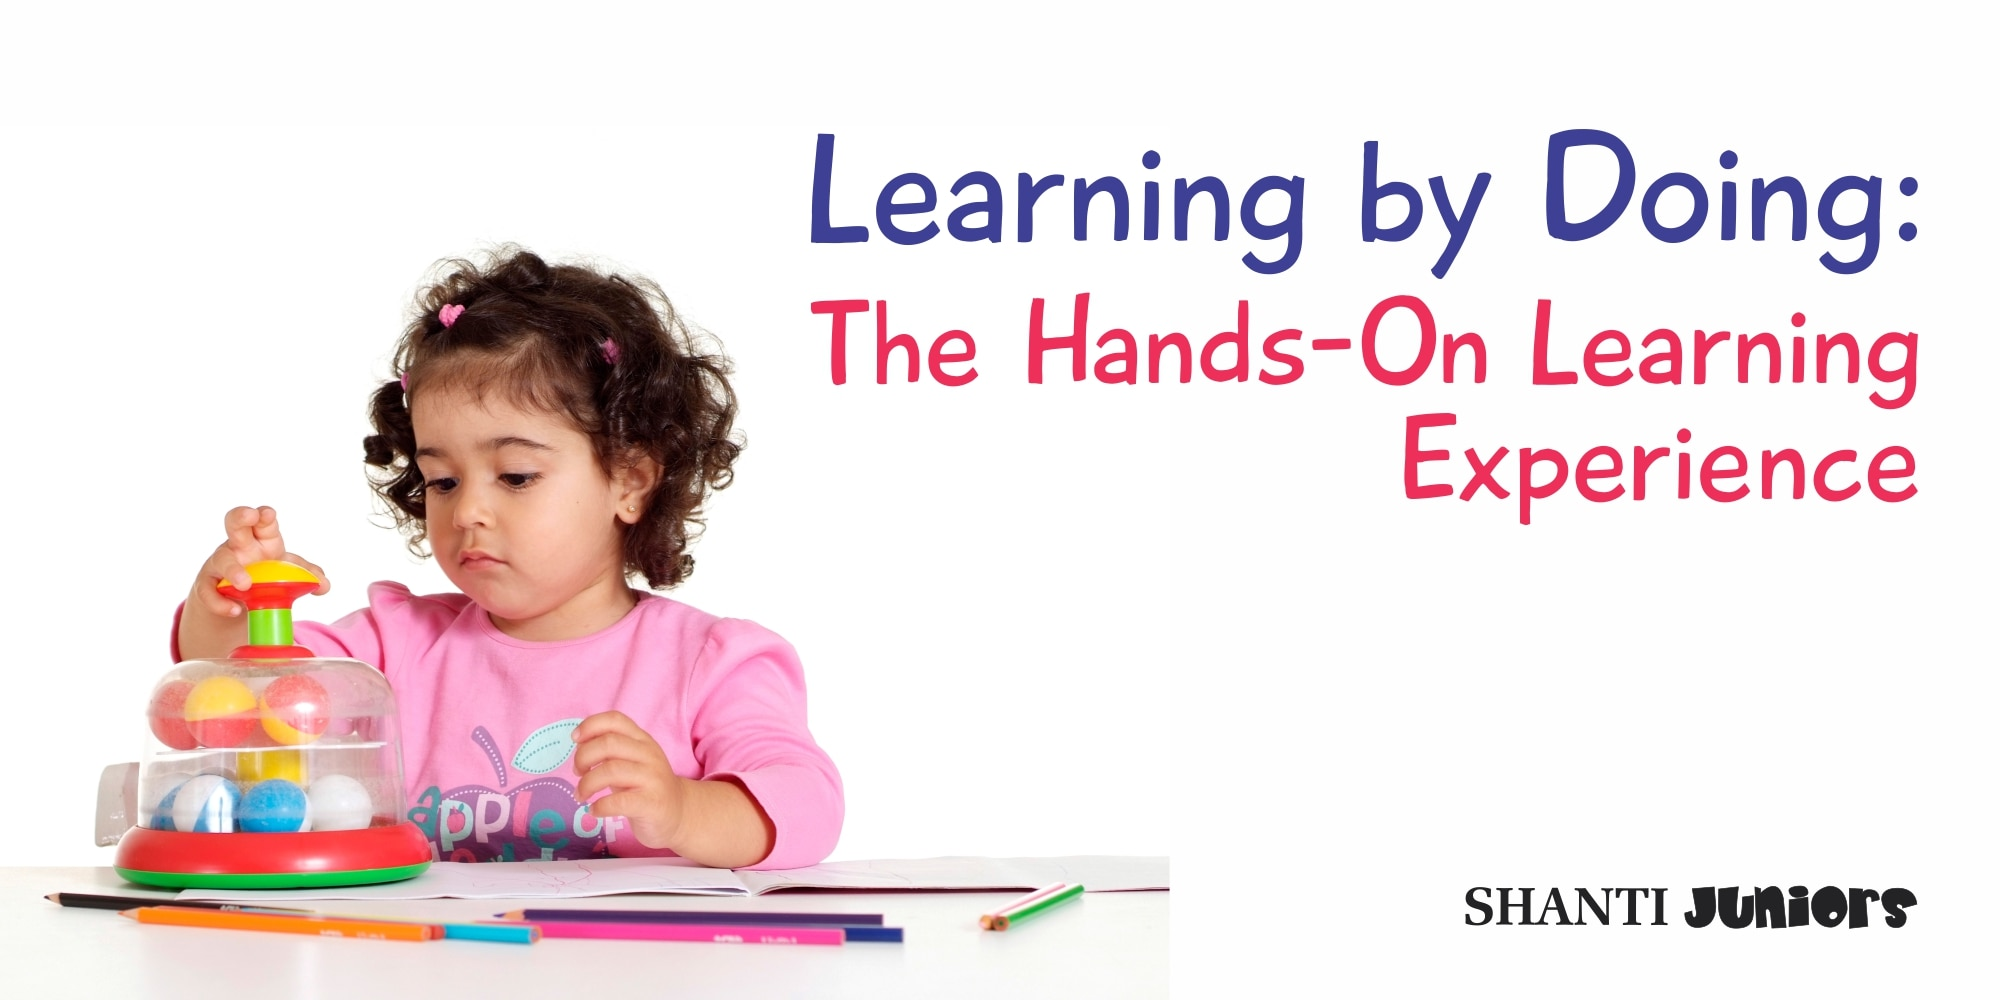 Learning by Doing: The Hands-On Learning Experience